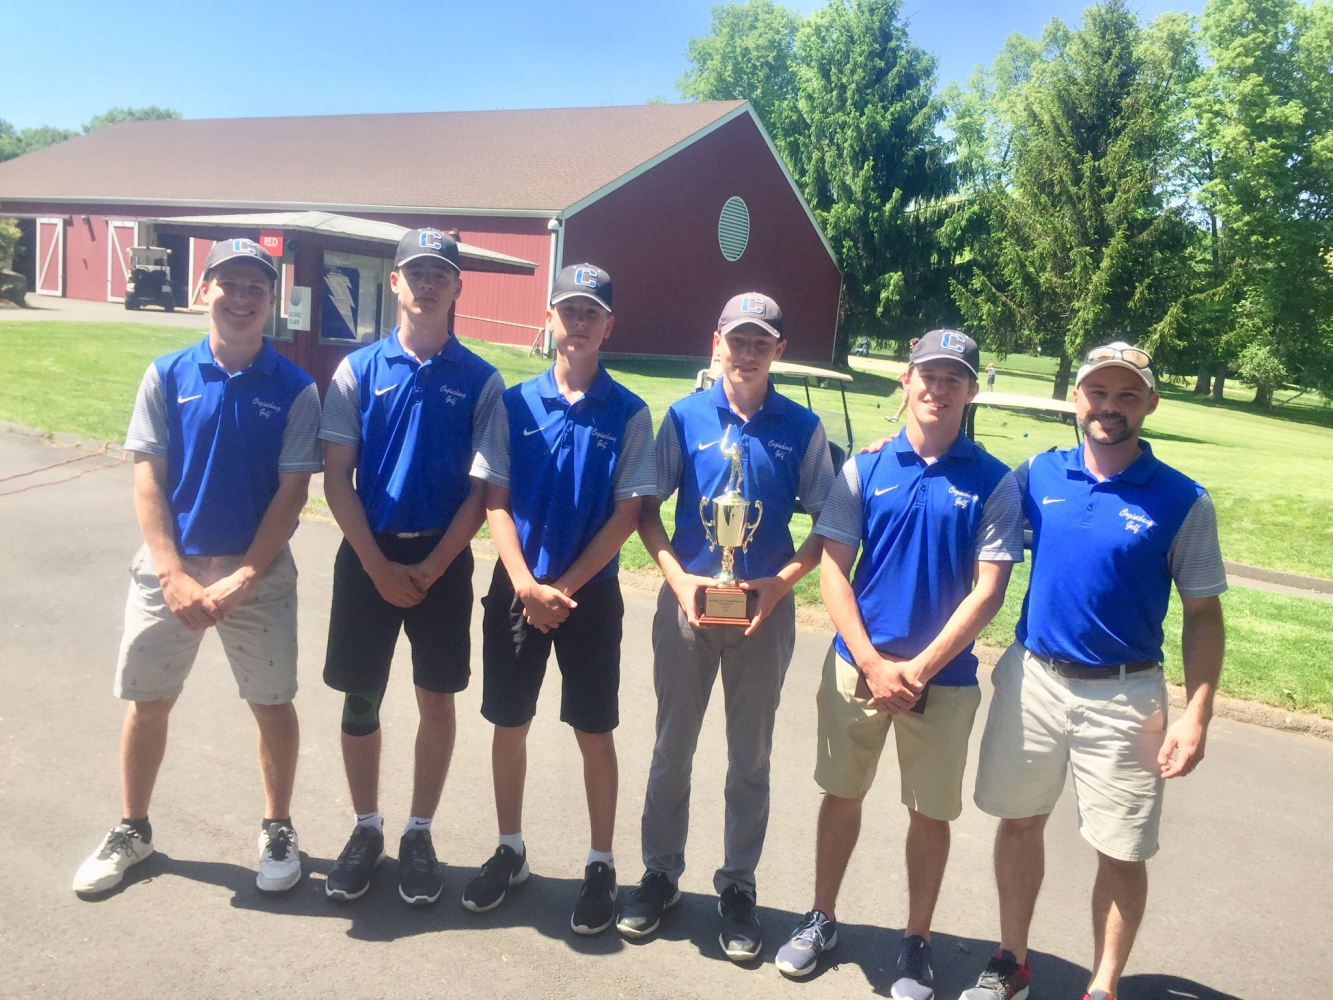 Golf Goes 14-1 in Regular Season; Clinches Second Shoreline Championship in a Row